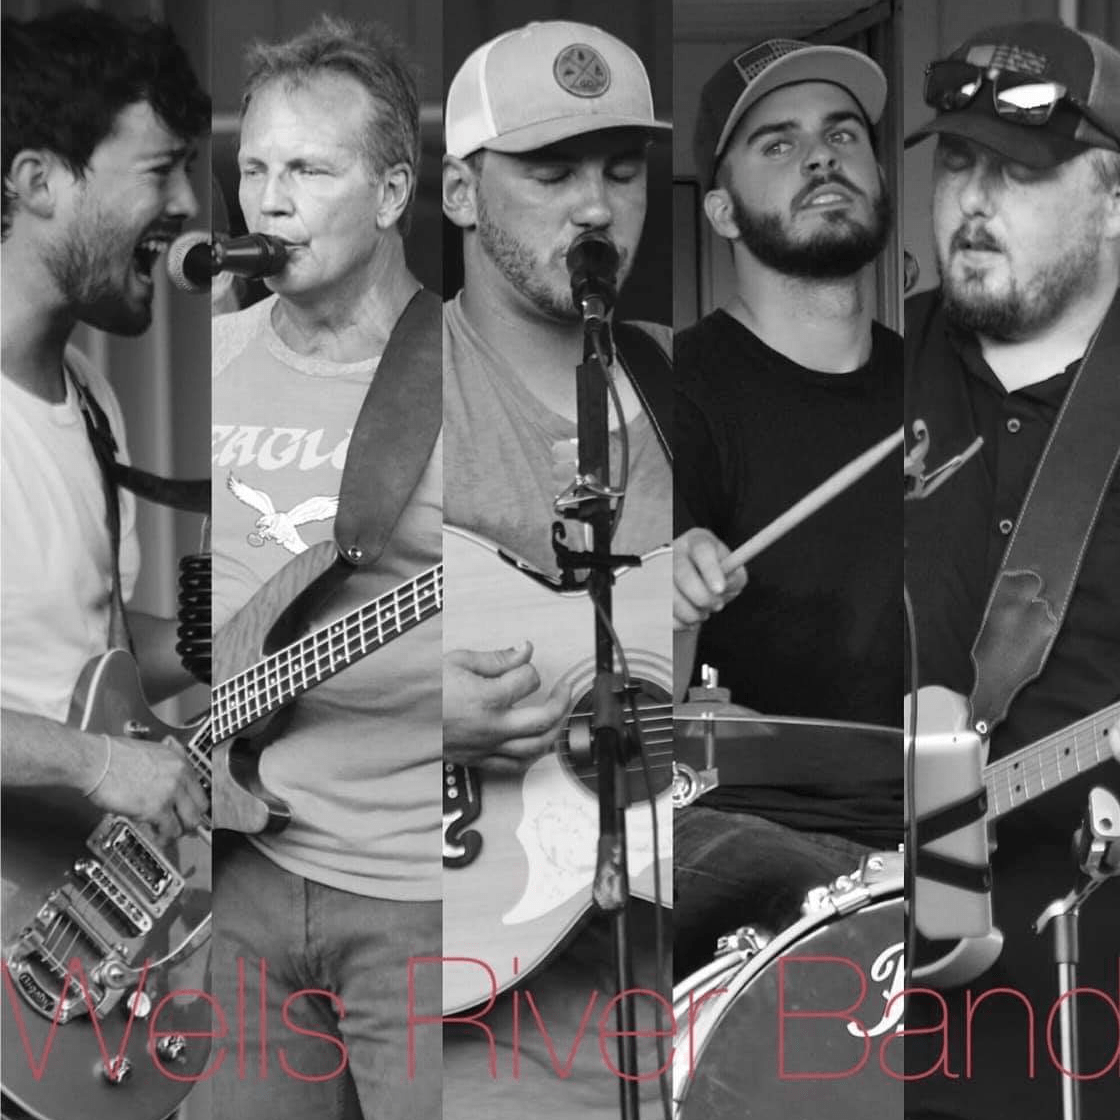 The Wells River Band